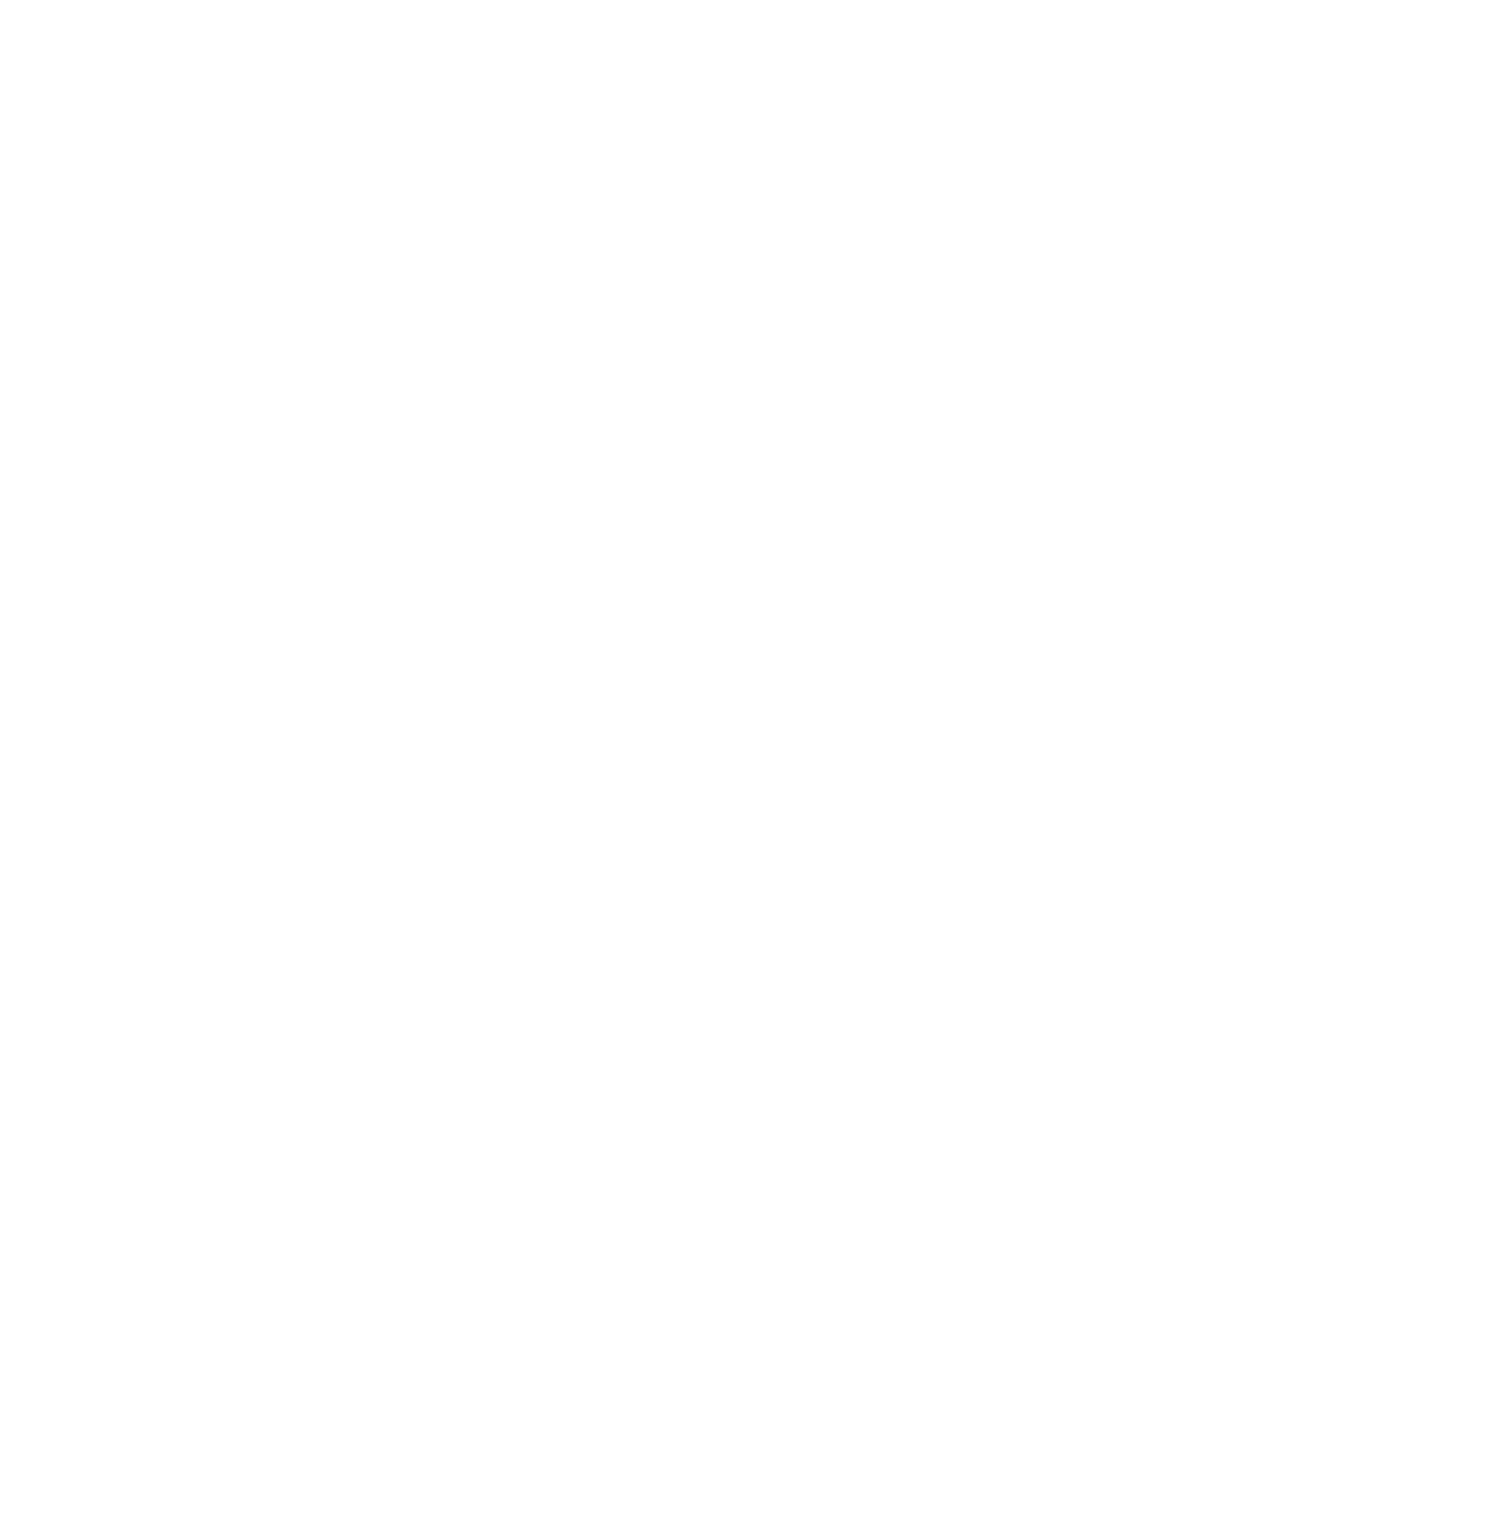 Grosse Pointe Woods Foundation